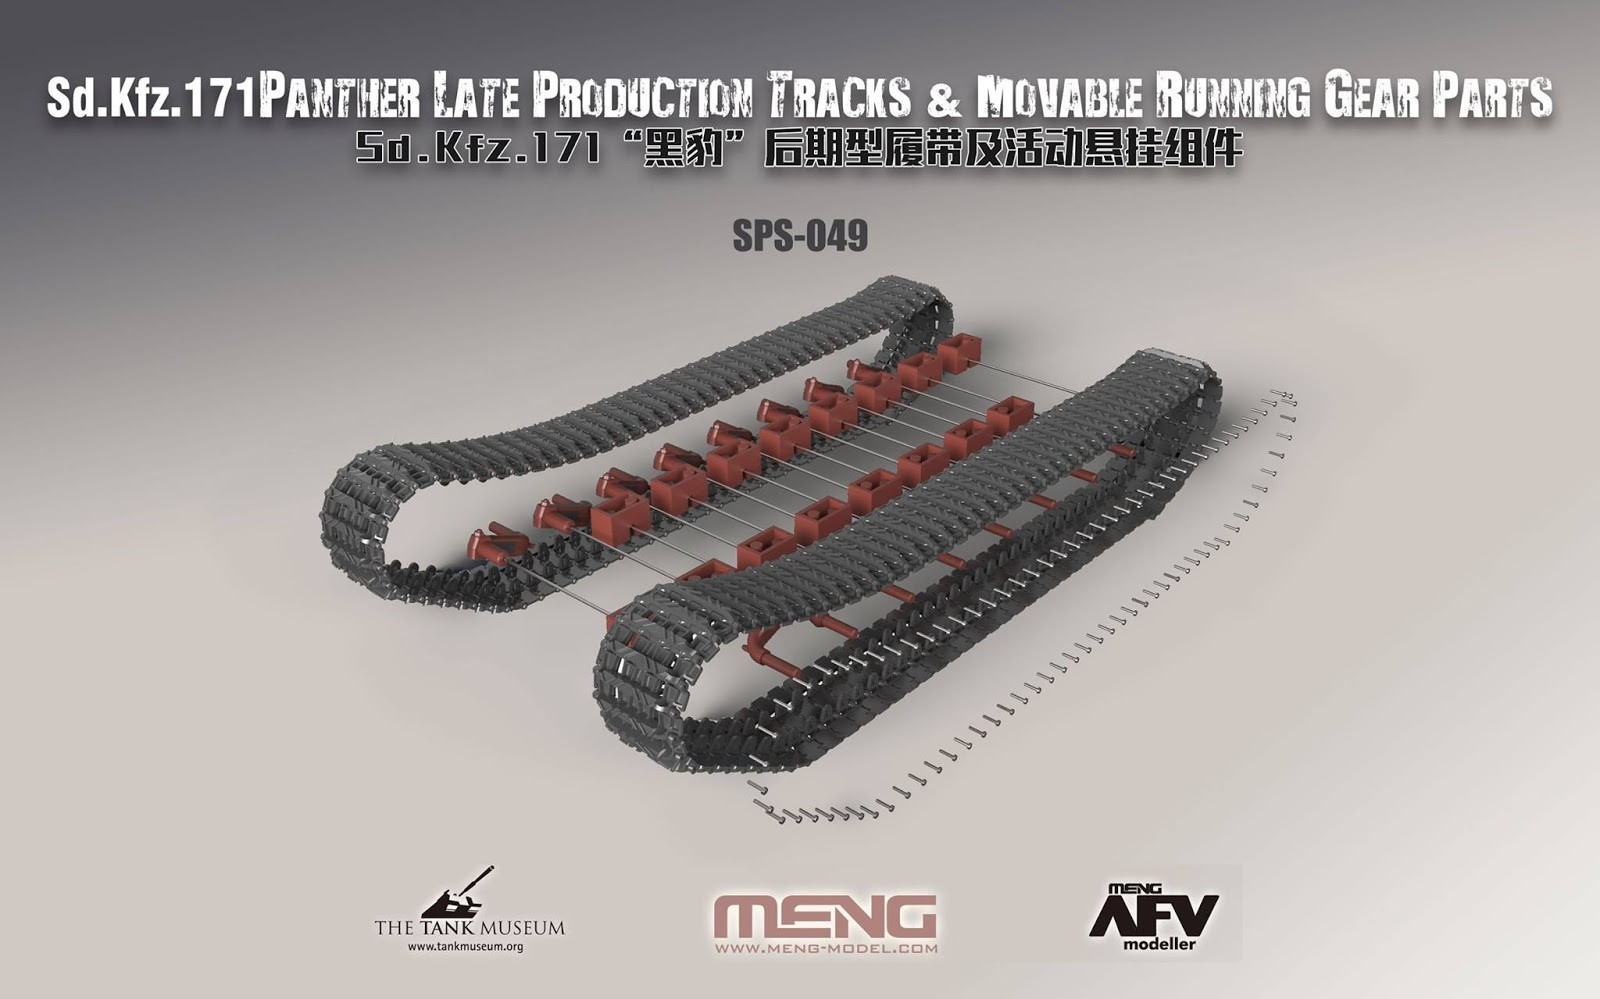 Meng Model 1:35 - Sd.Kfz.171 Panther Tracks & Running Gear